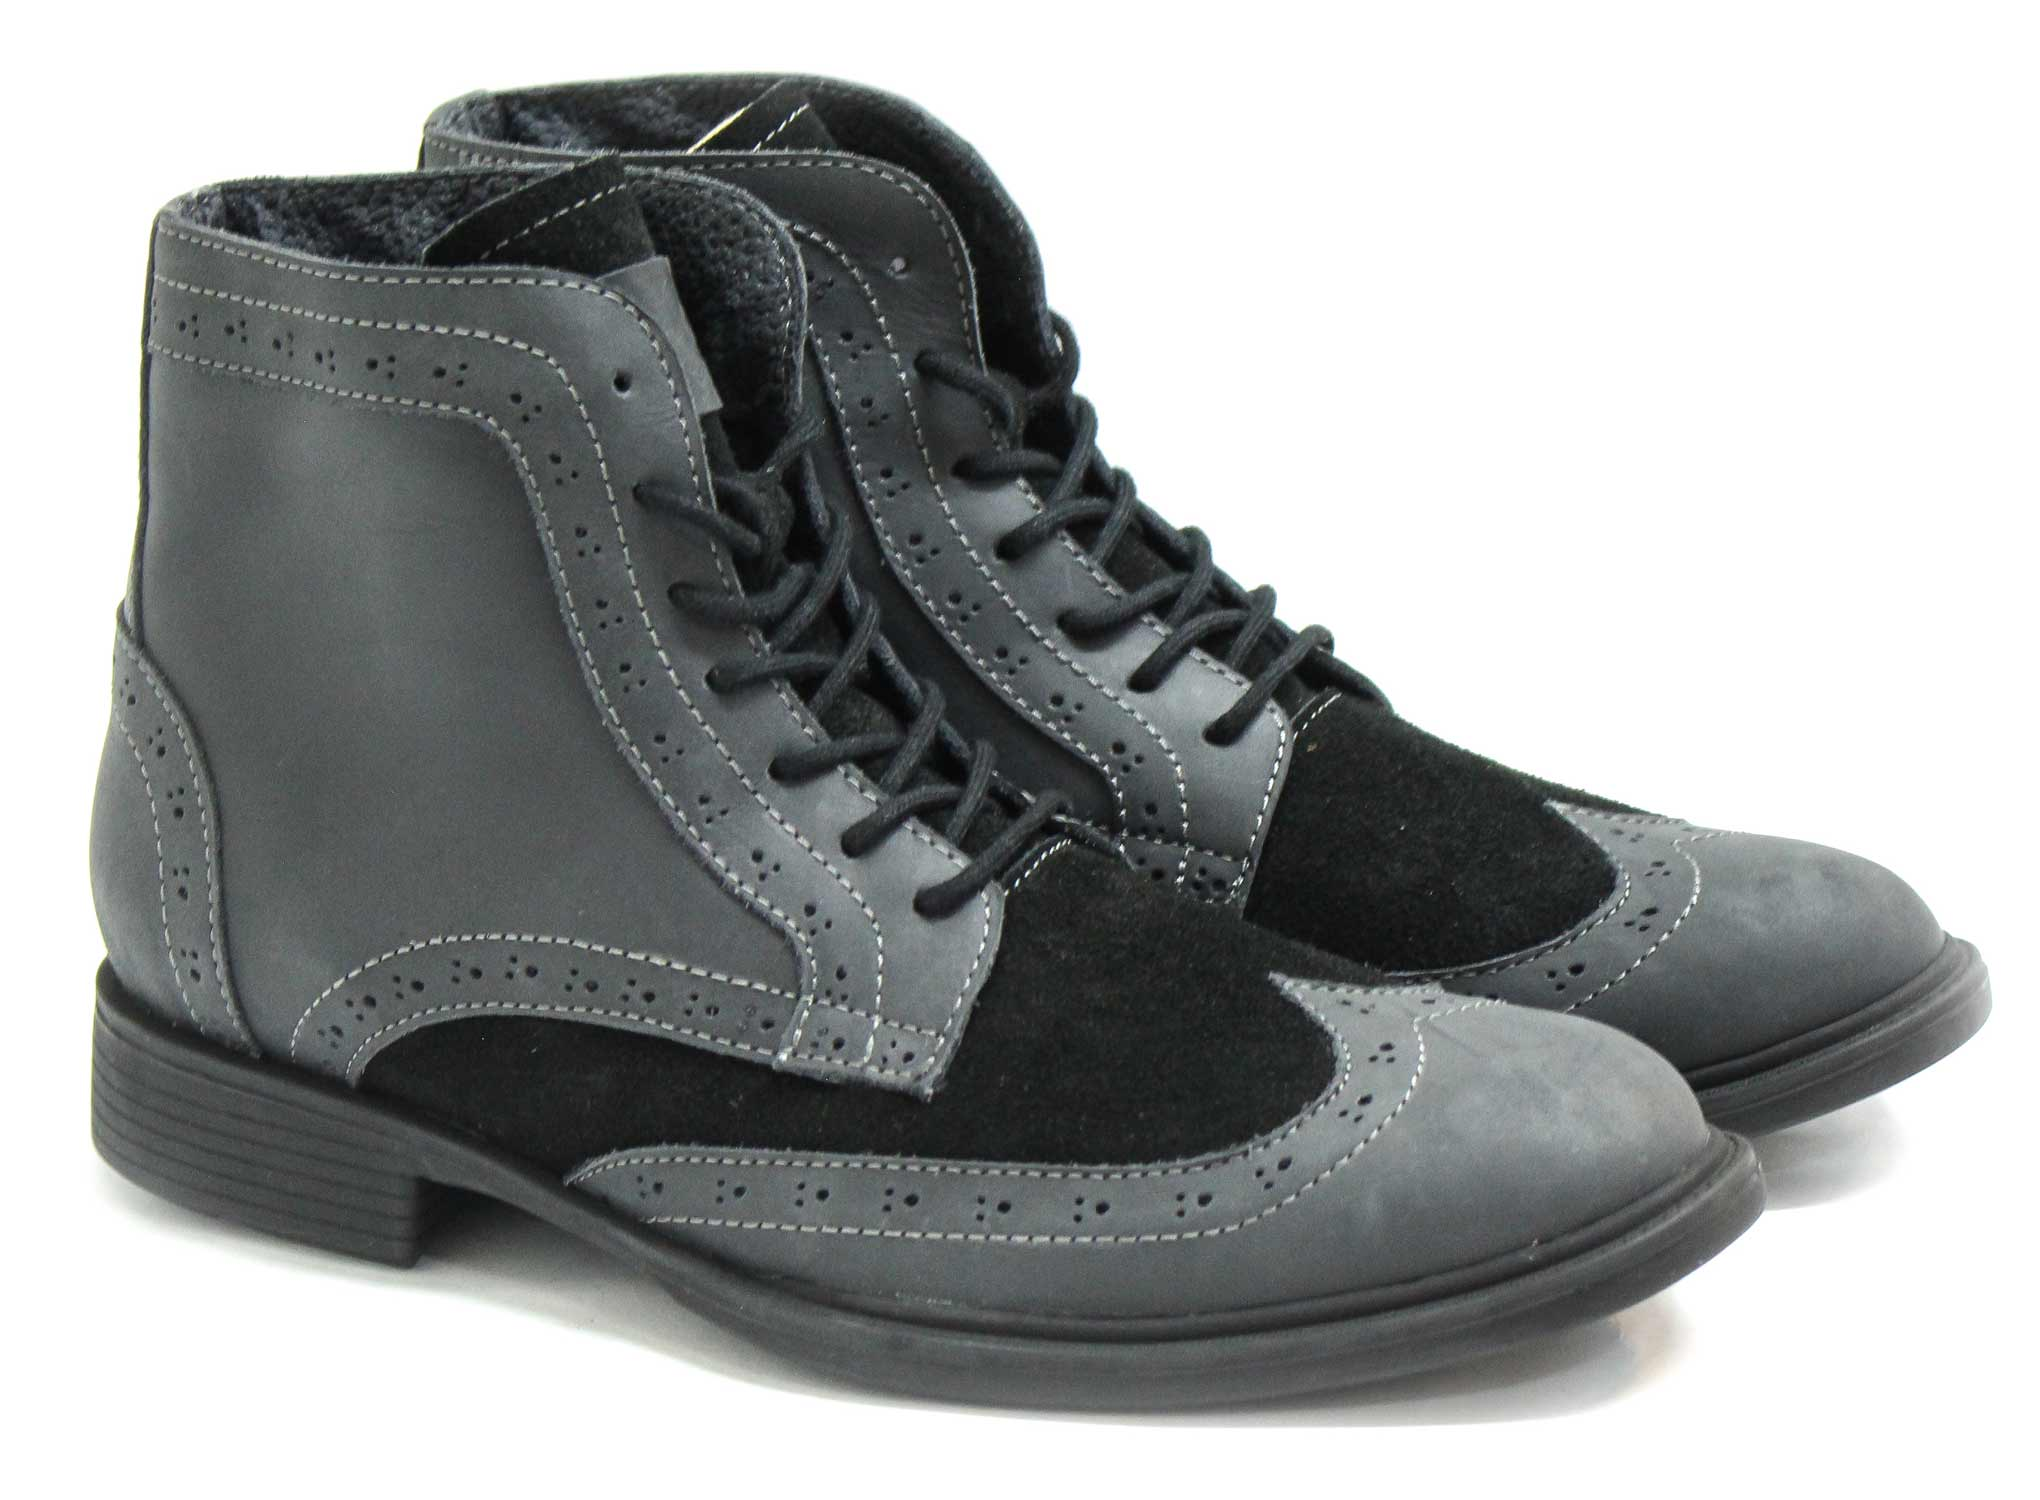 Oxford Boots - Black - Green Bear Shoes